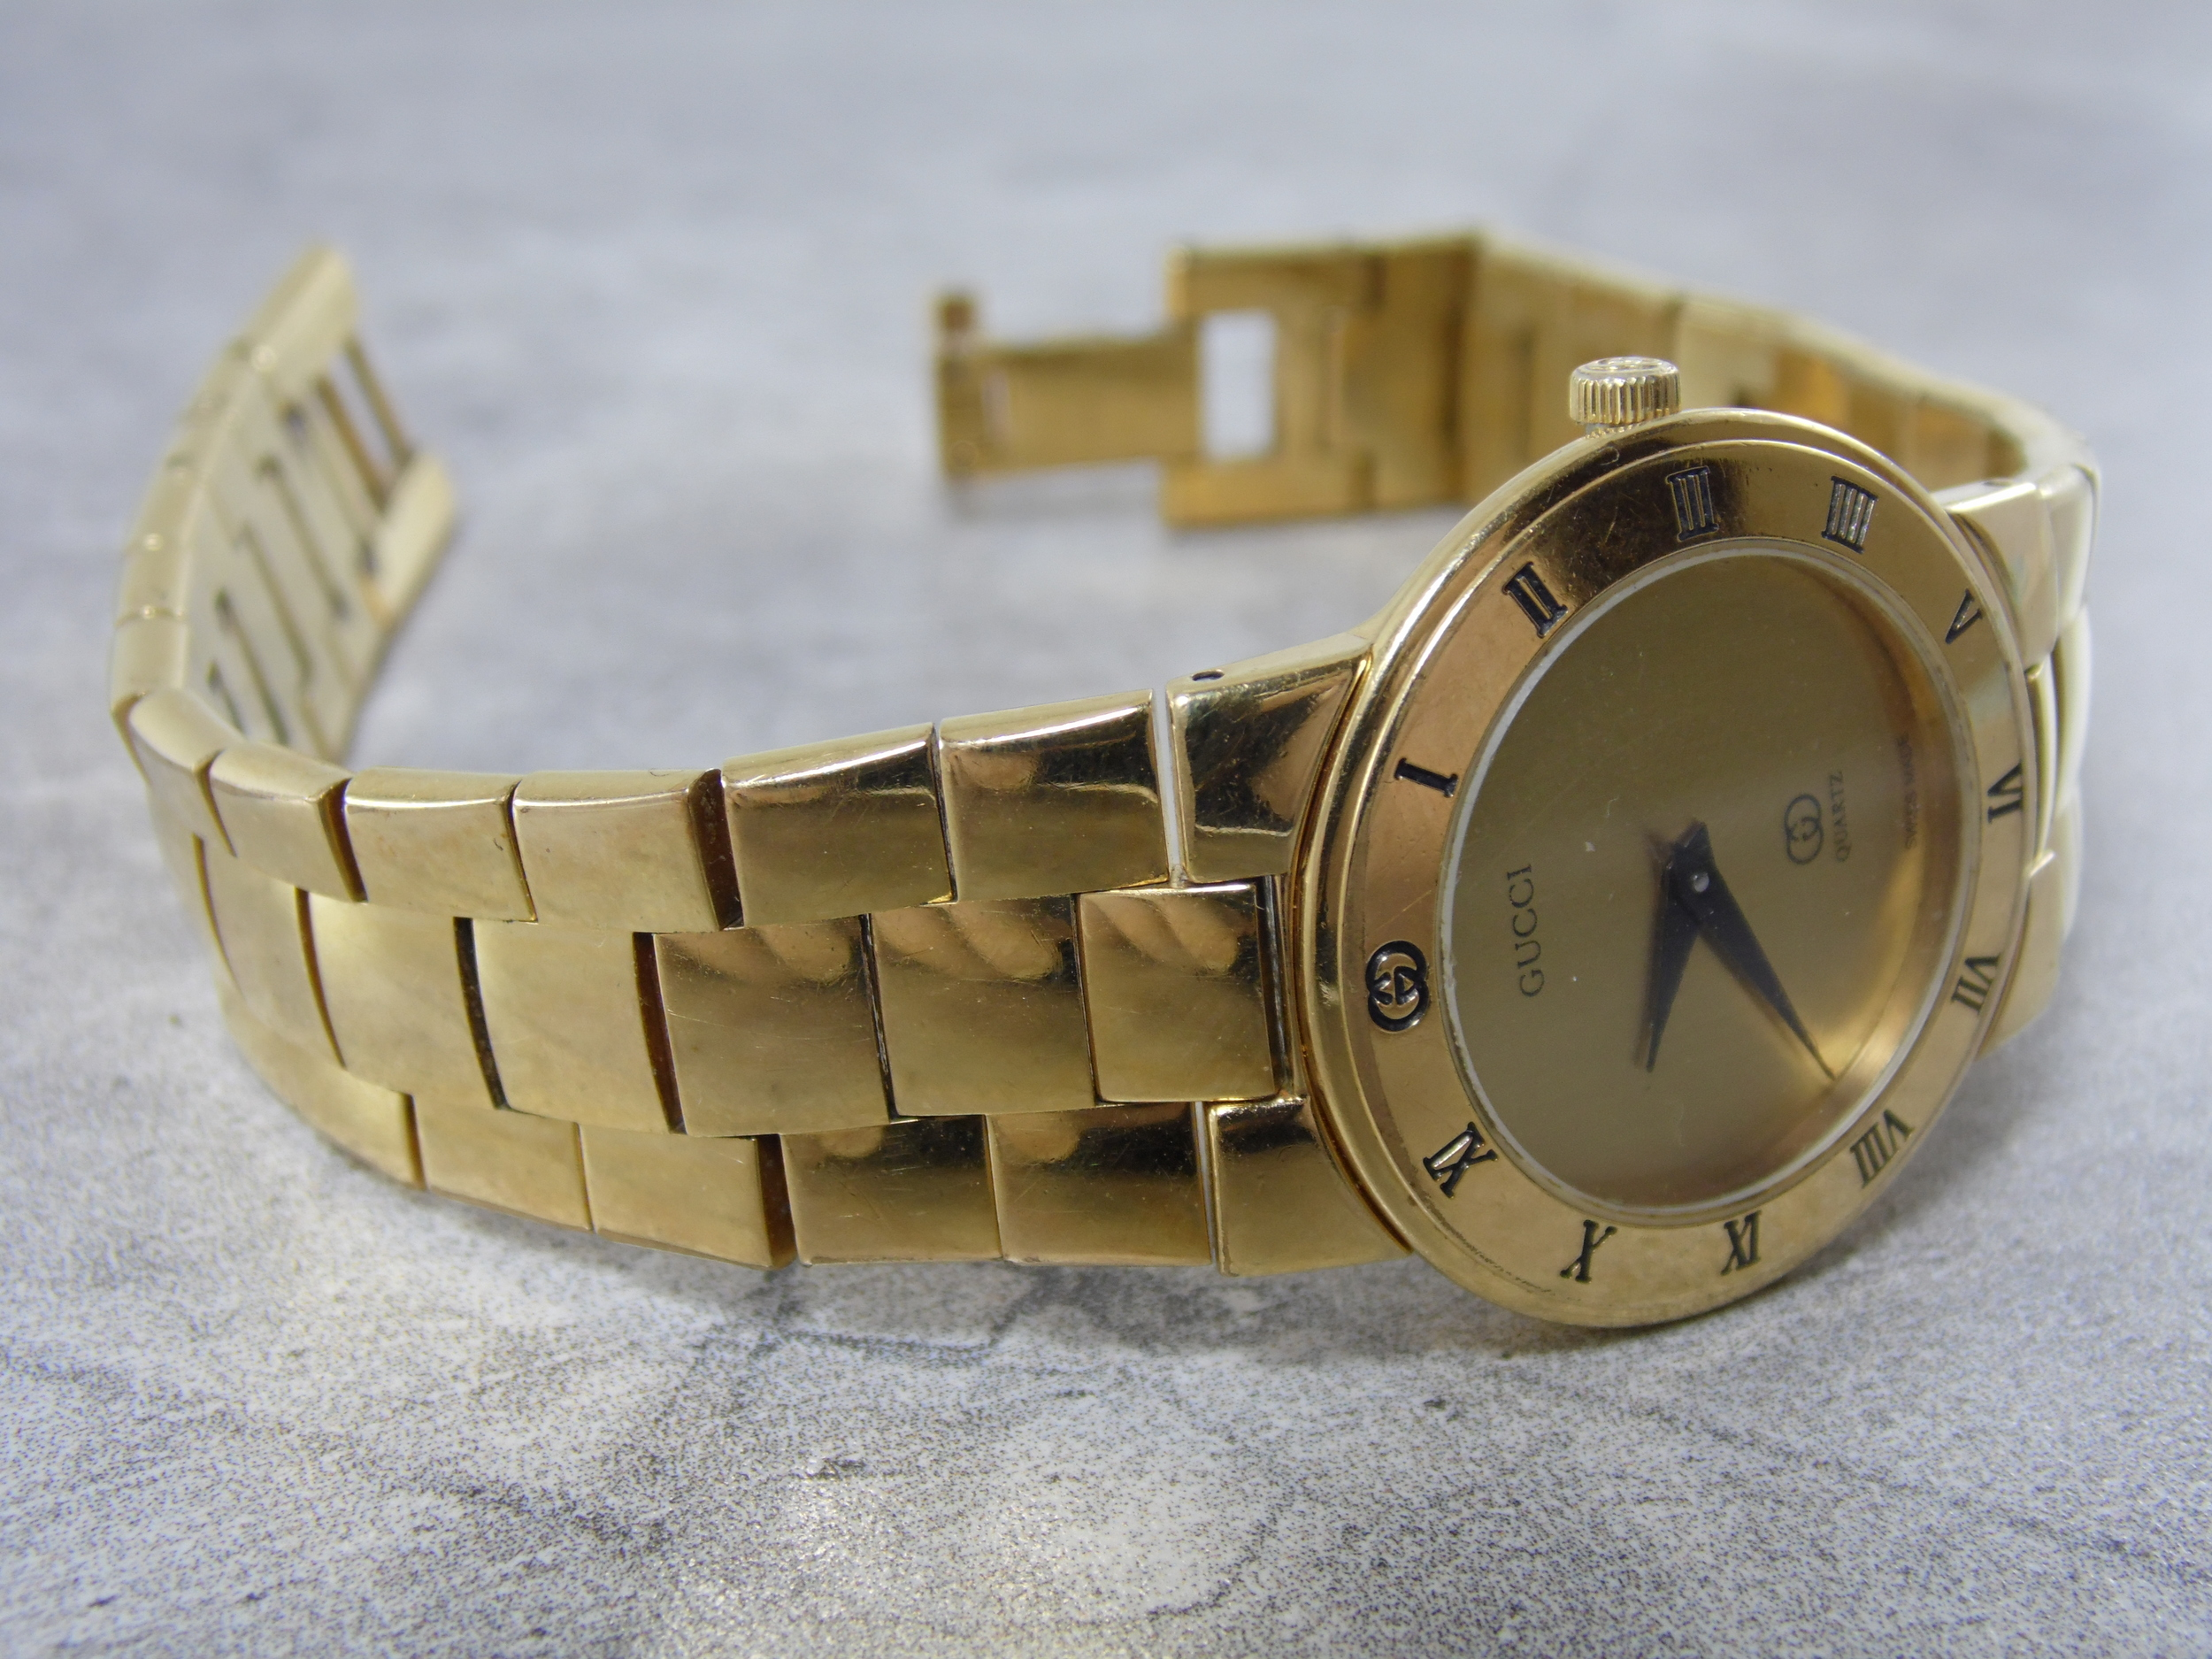 unboxing real gold kors youtube hd watch michael watches